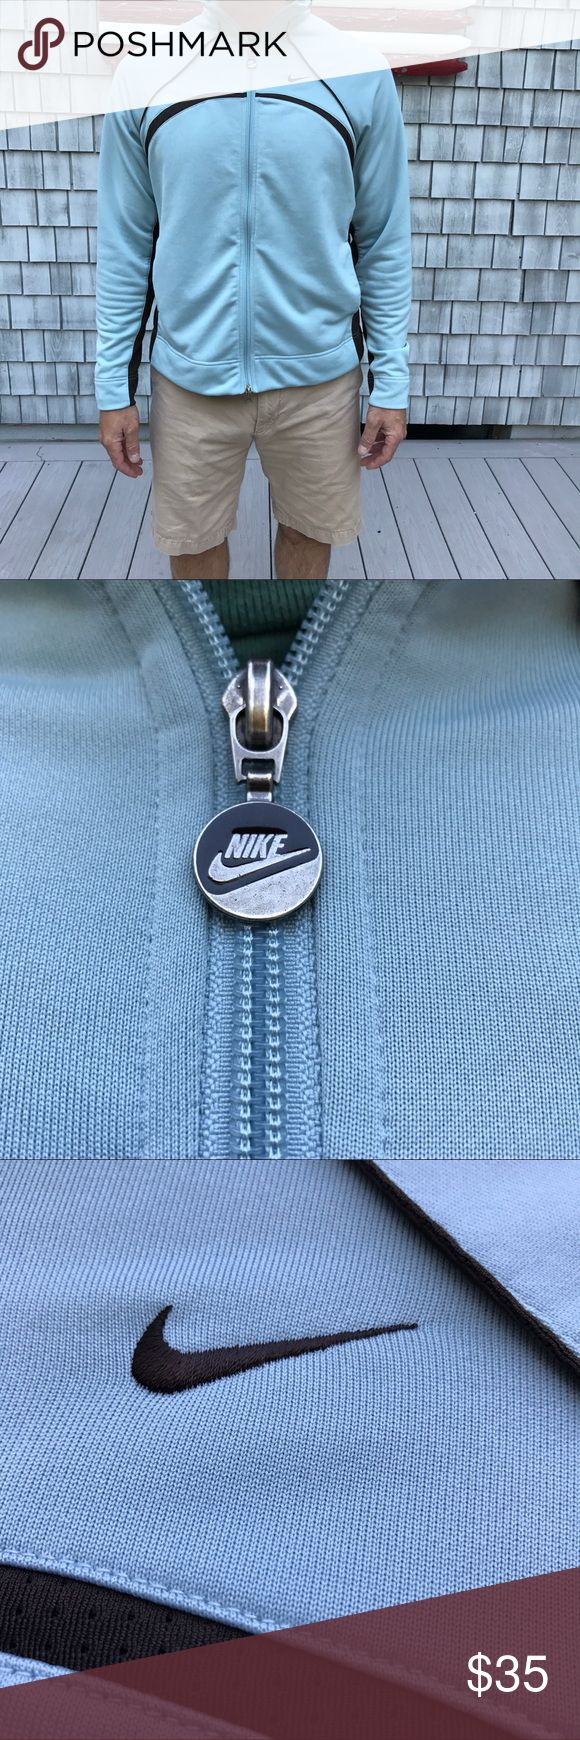 Nike Sport Jacket EUC light blue and brown trimmings. Brown mesh panels on sides. Says XXL works well for Large XL Nike Jackets & Coats Performance Jackets